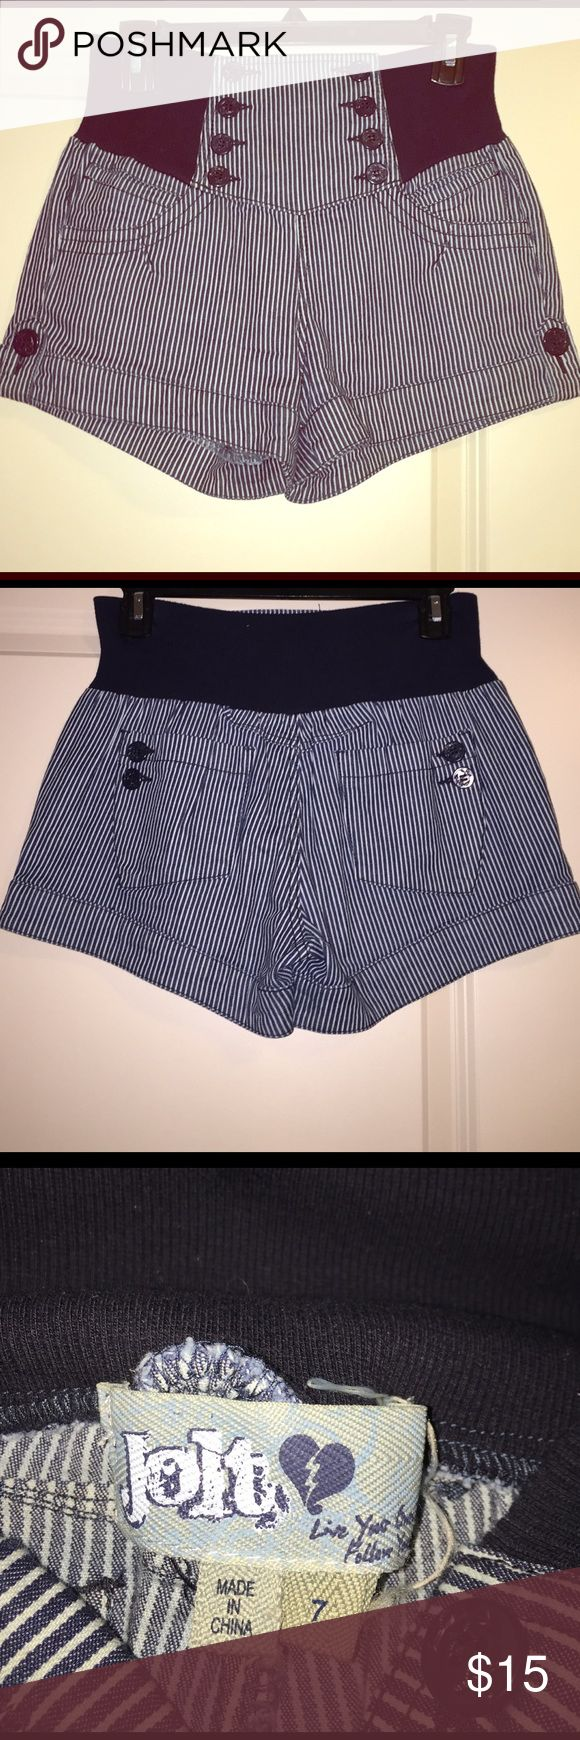 Jolt Nautical shorts Nautical high waist Pin striped navy/ white denim like material with stretch waist band! Worn once for Fourth of July. cute with crop tops!!! Jolt Shorts Jean Shorts